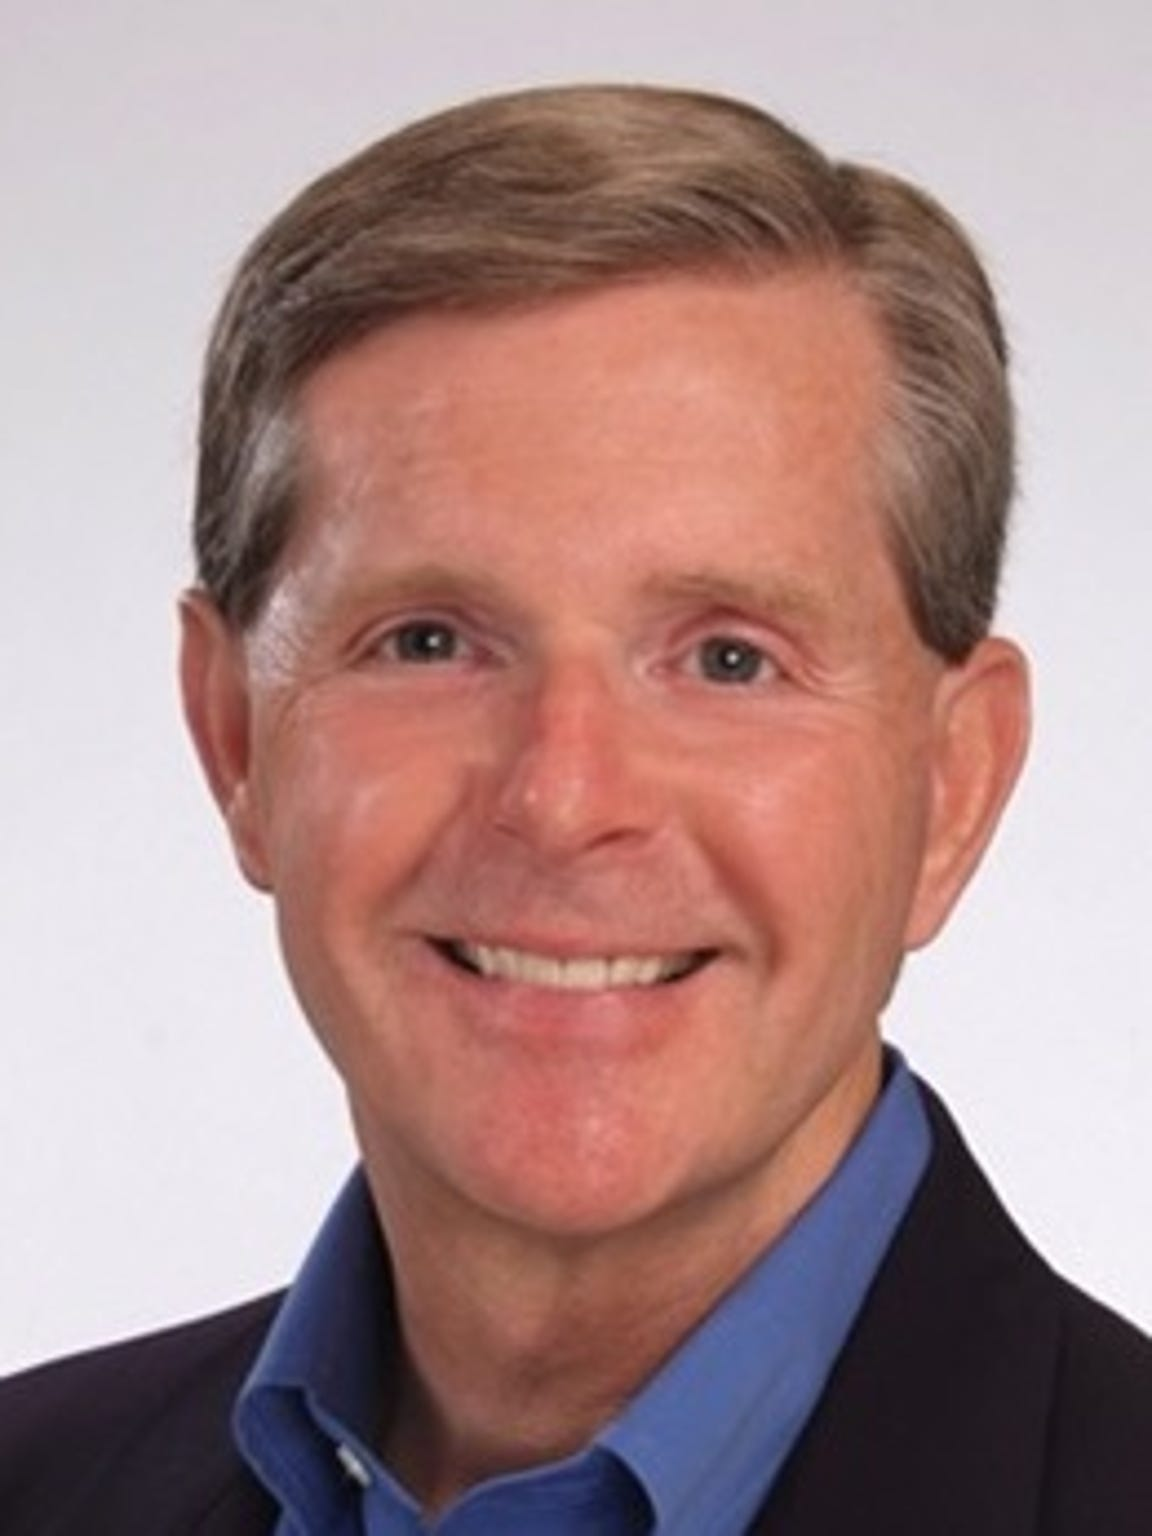 State Rep. Phil King